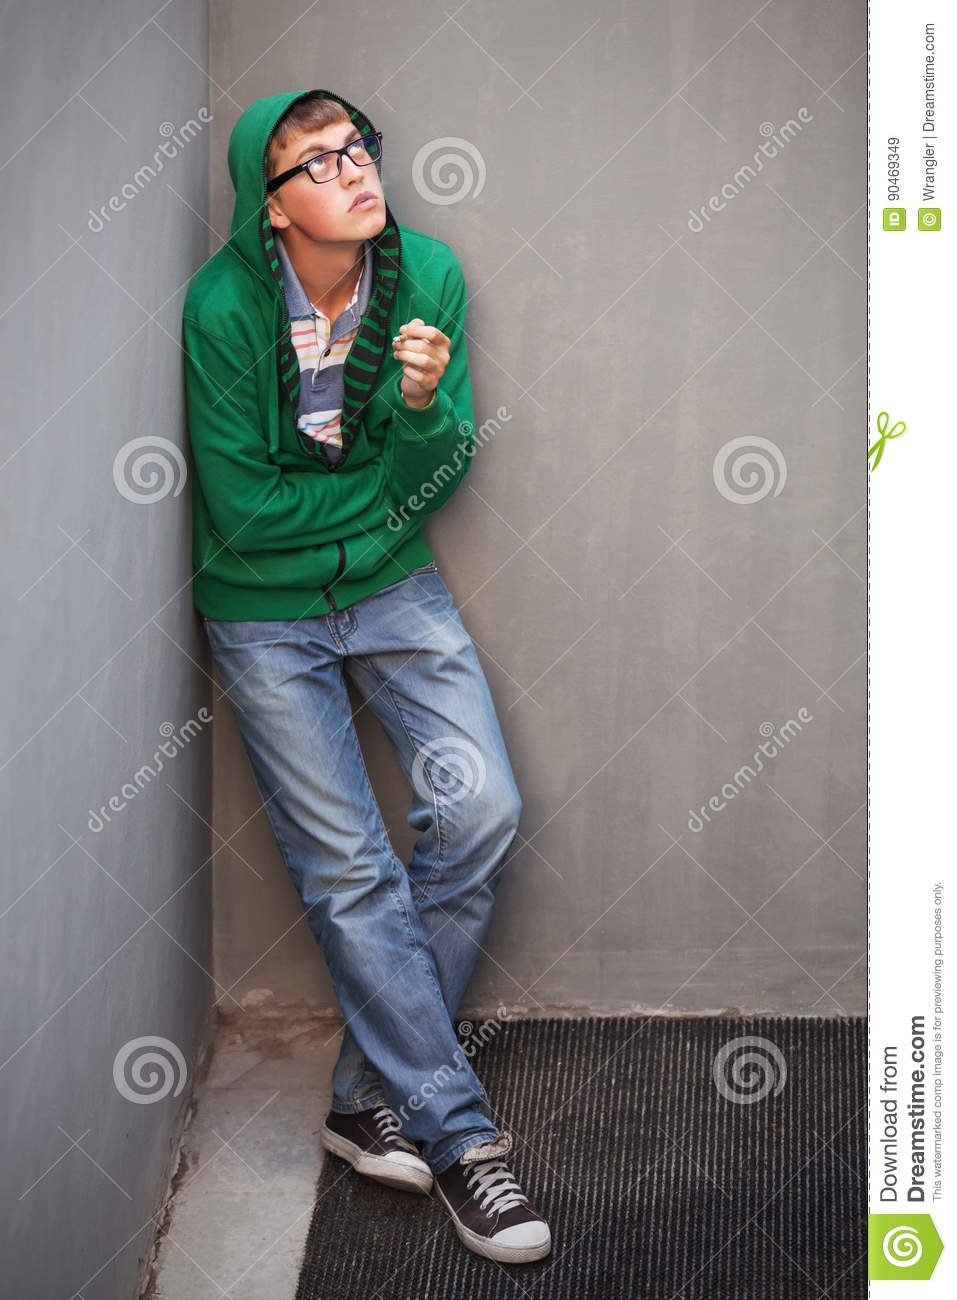 Boy smoking cigarette stock images download 305 royalty free photos